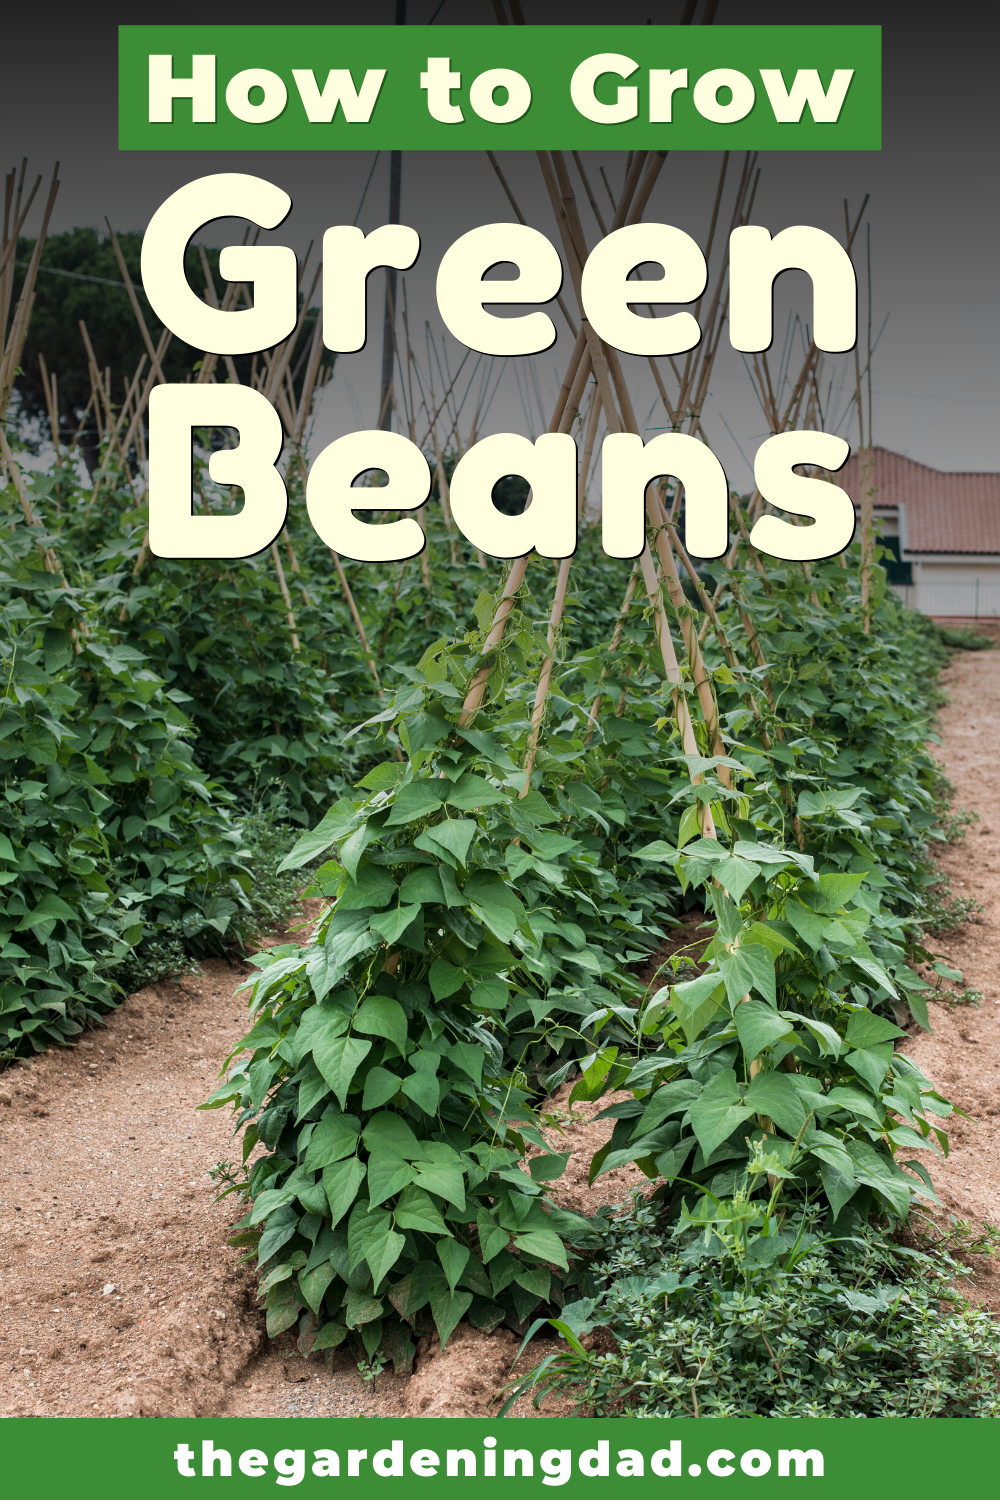 7 Easy Tips Growing Green Beans From Seed The Gardening Dad Growing Green Beans Growing Greens Gardening For Beginners